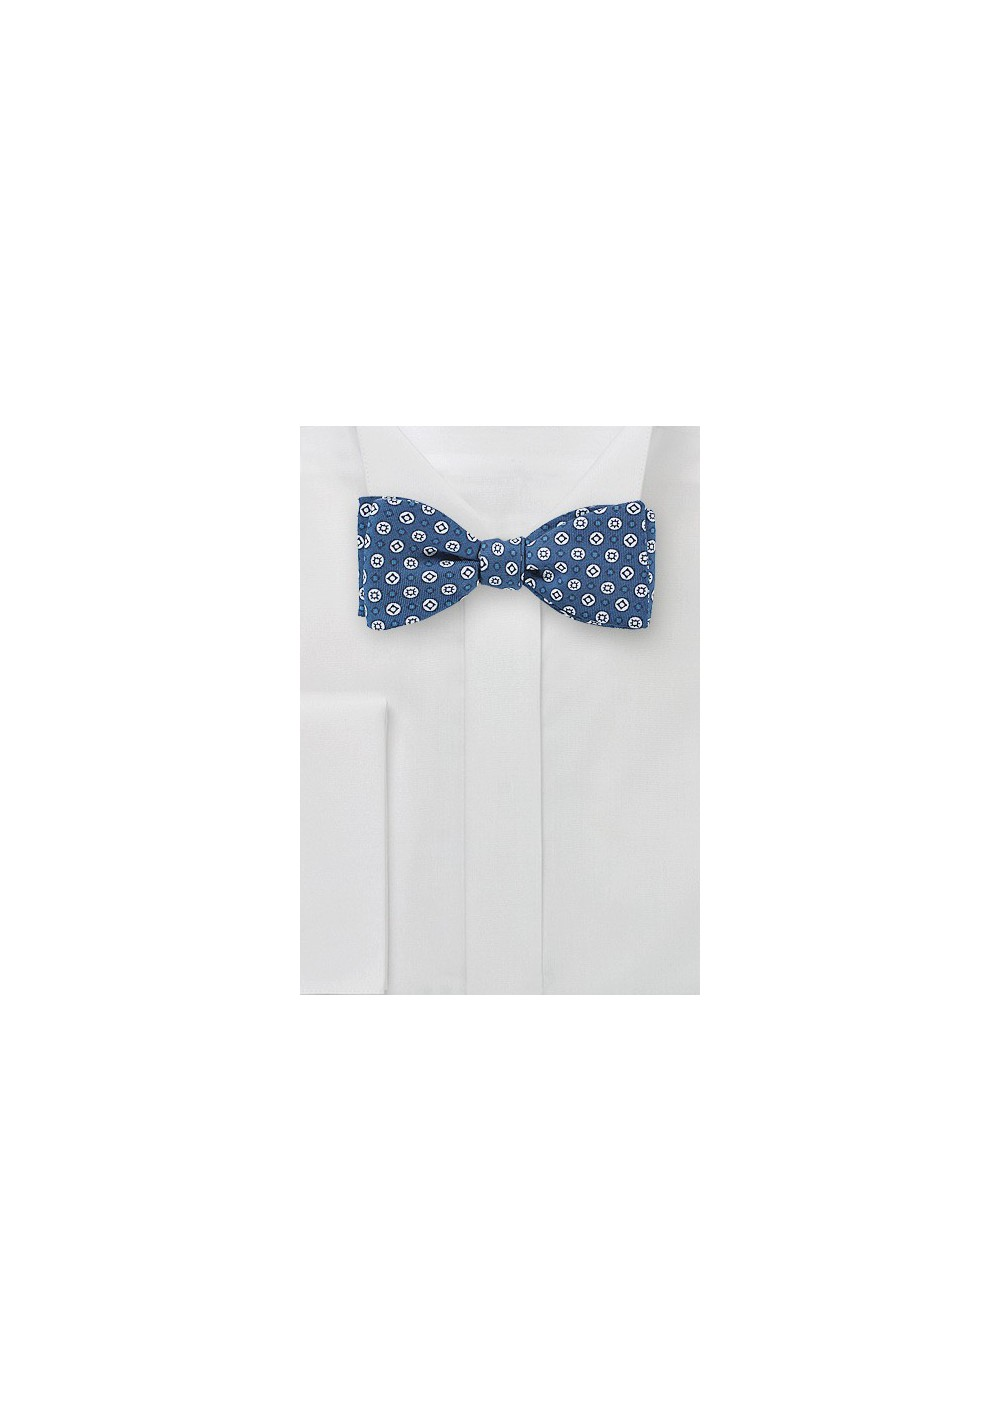 Geo Print Bow Tie in Blue and White